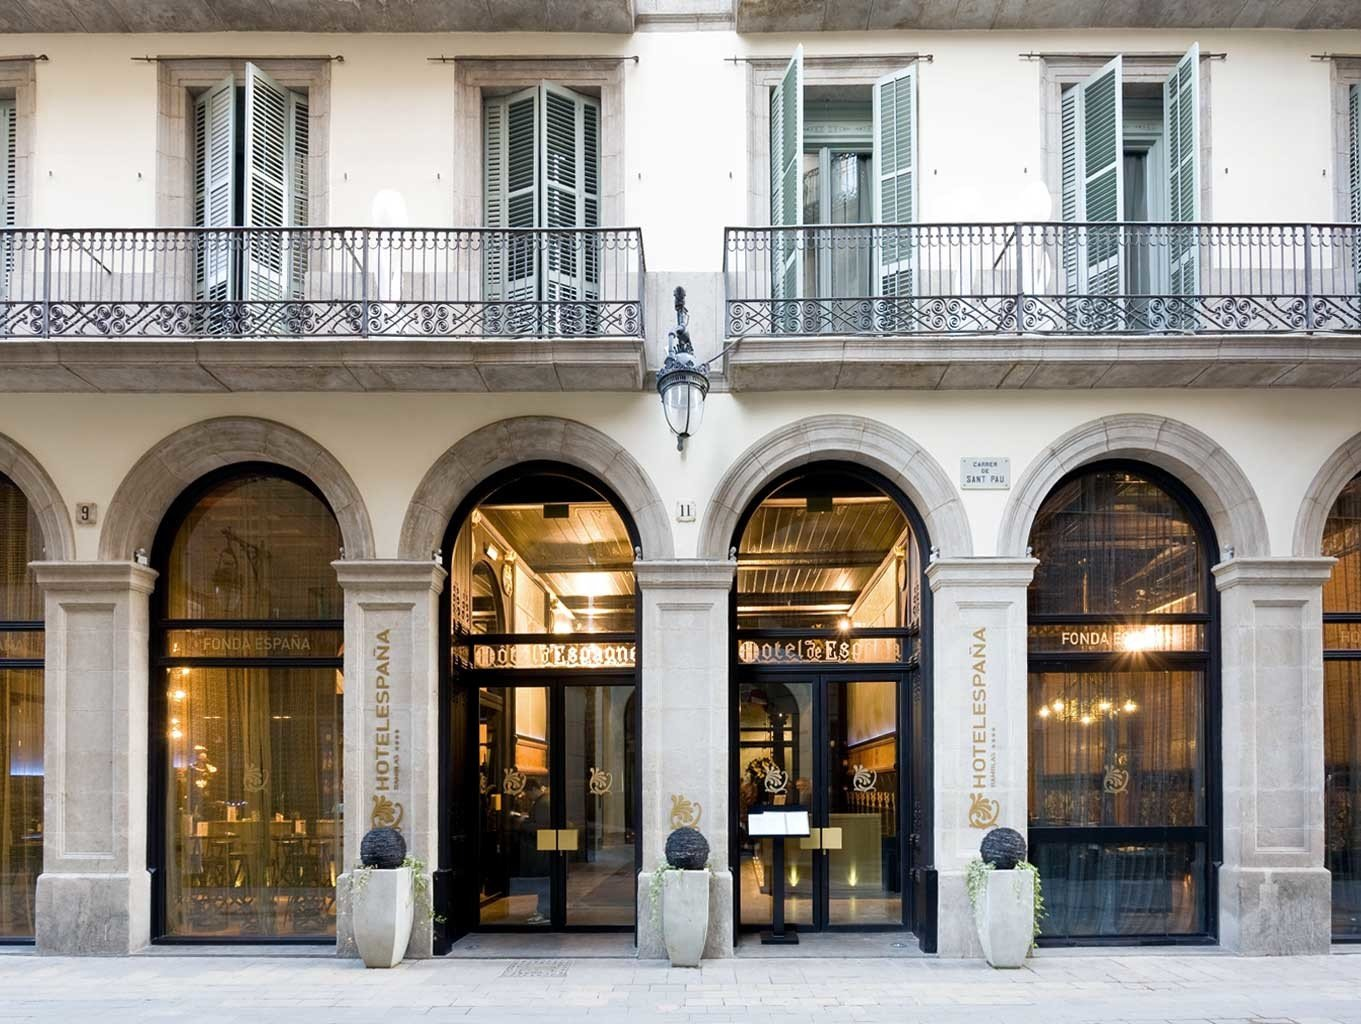 Boutique Hotels Buildings City Hip Historic Hotels building outdoor Architecture urban area arcade facade Downtown estate arch window palace tourist attraction stone colonnade